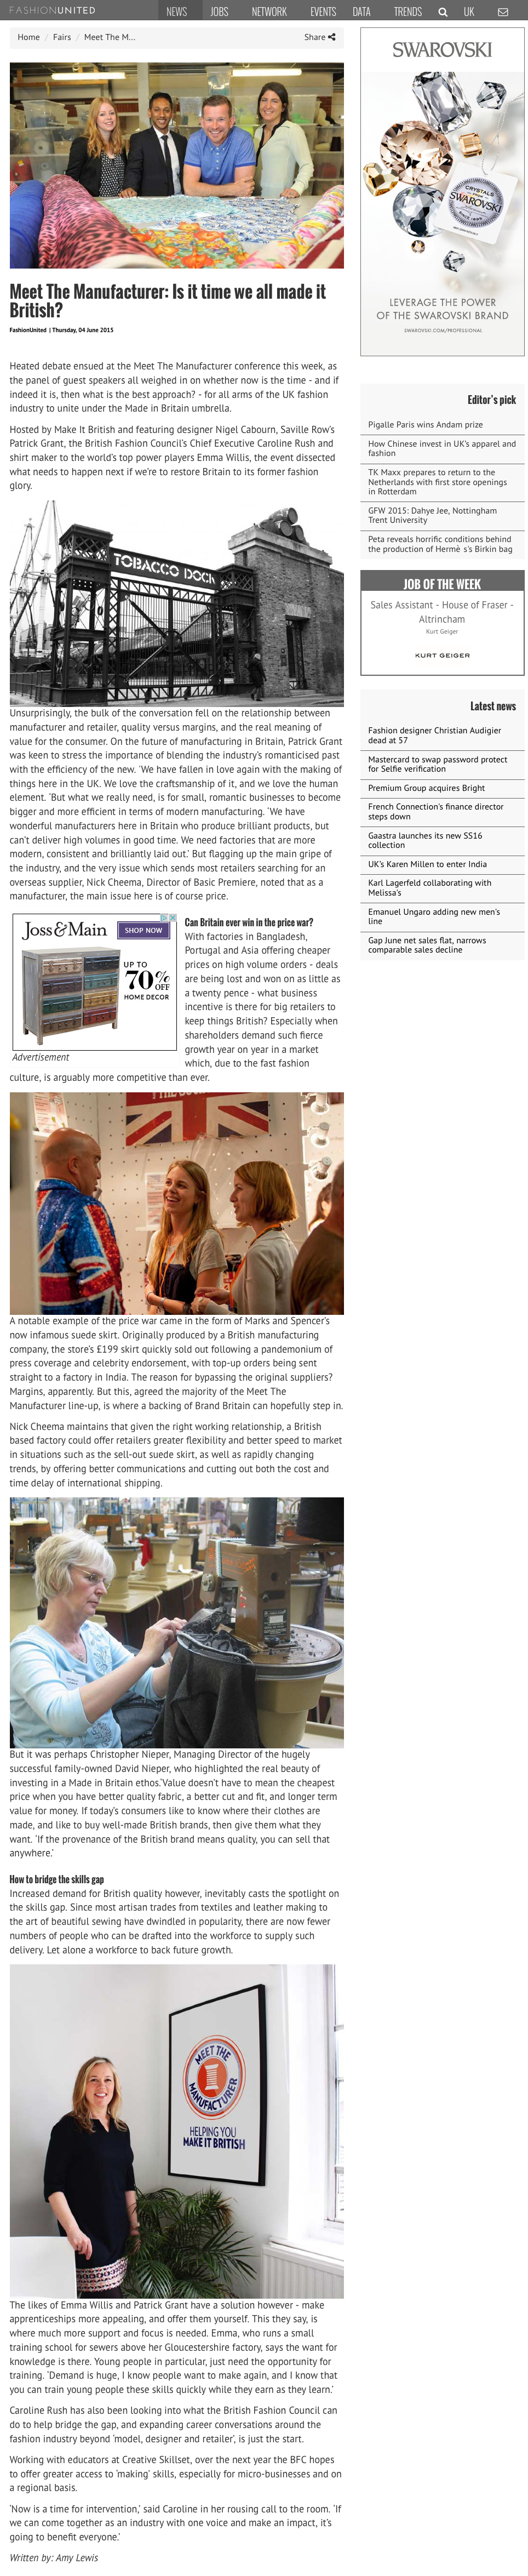 Meet_The_Manufacturer_Is_it_time_we_all_made_it_British_-_2015-07-12_23.19.15 copy